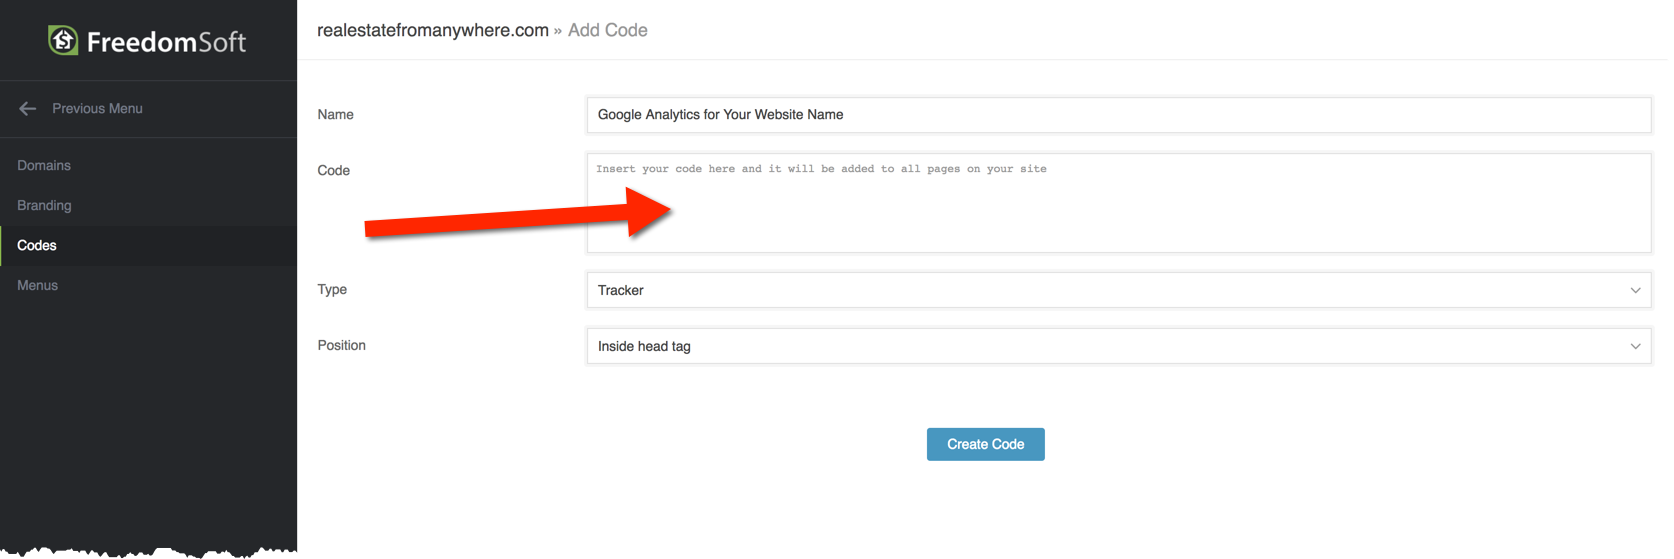 google_analytics_step3.png